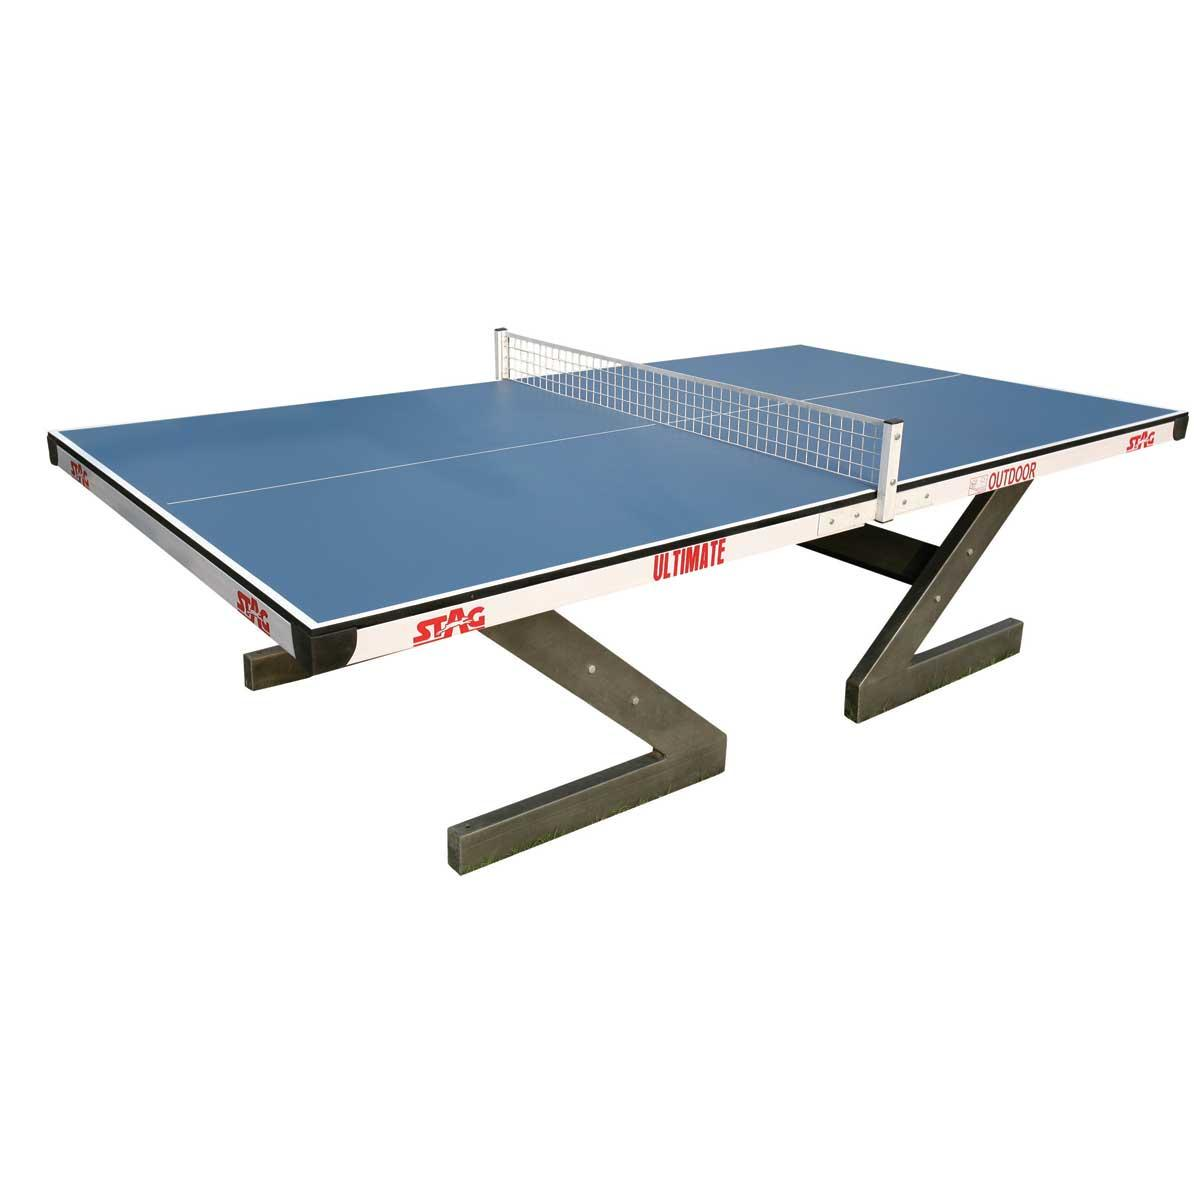 Buy Stag Ultimate Weather Proof Table Tennis Table Online